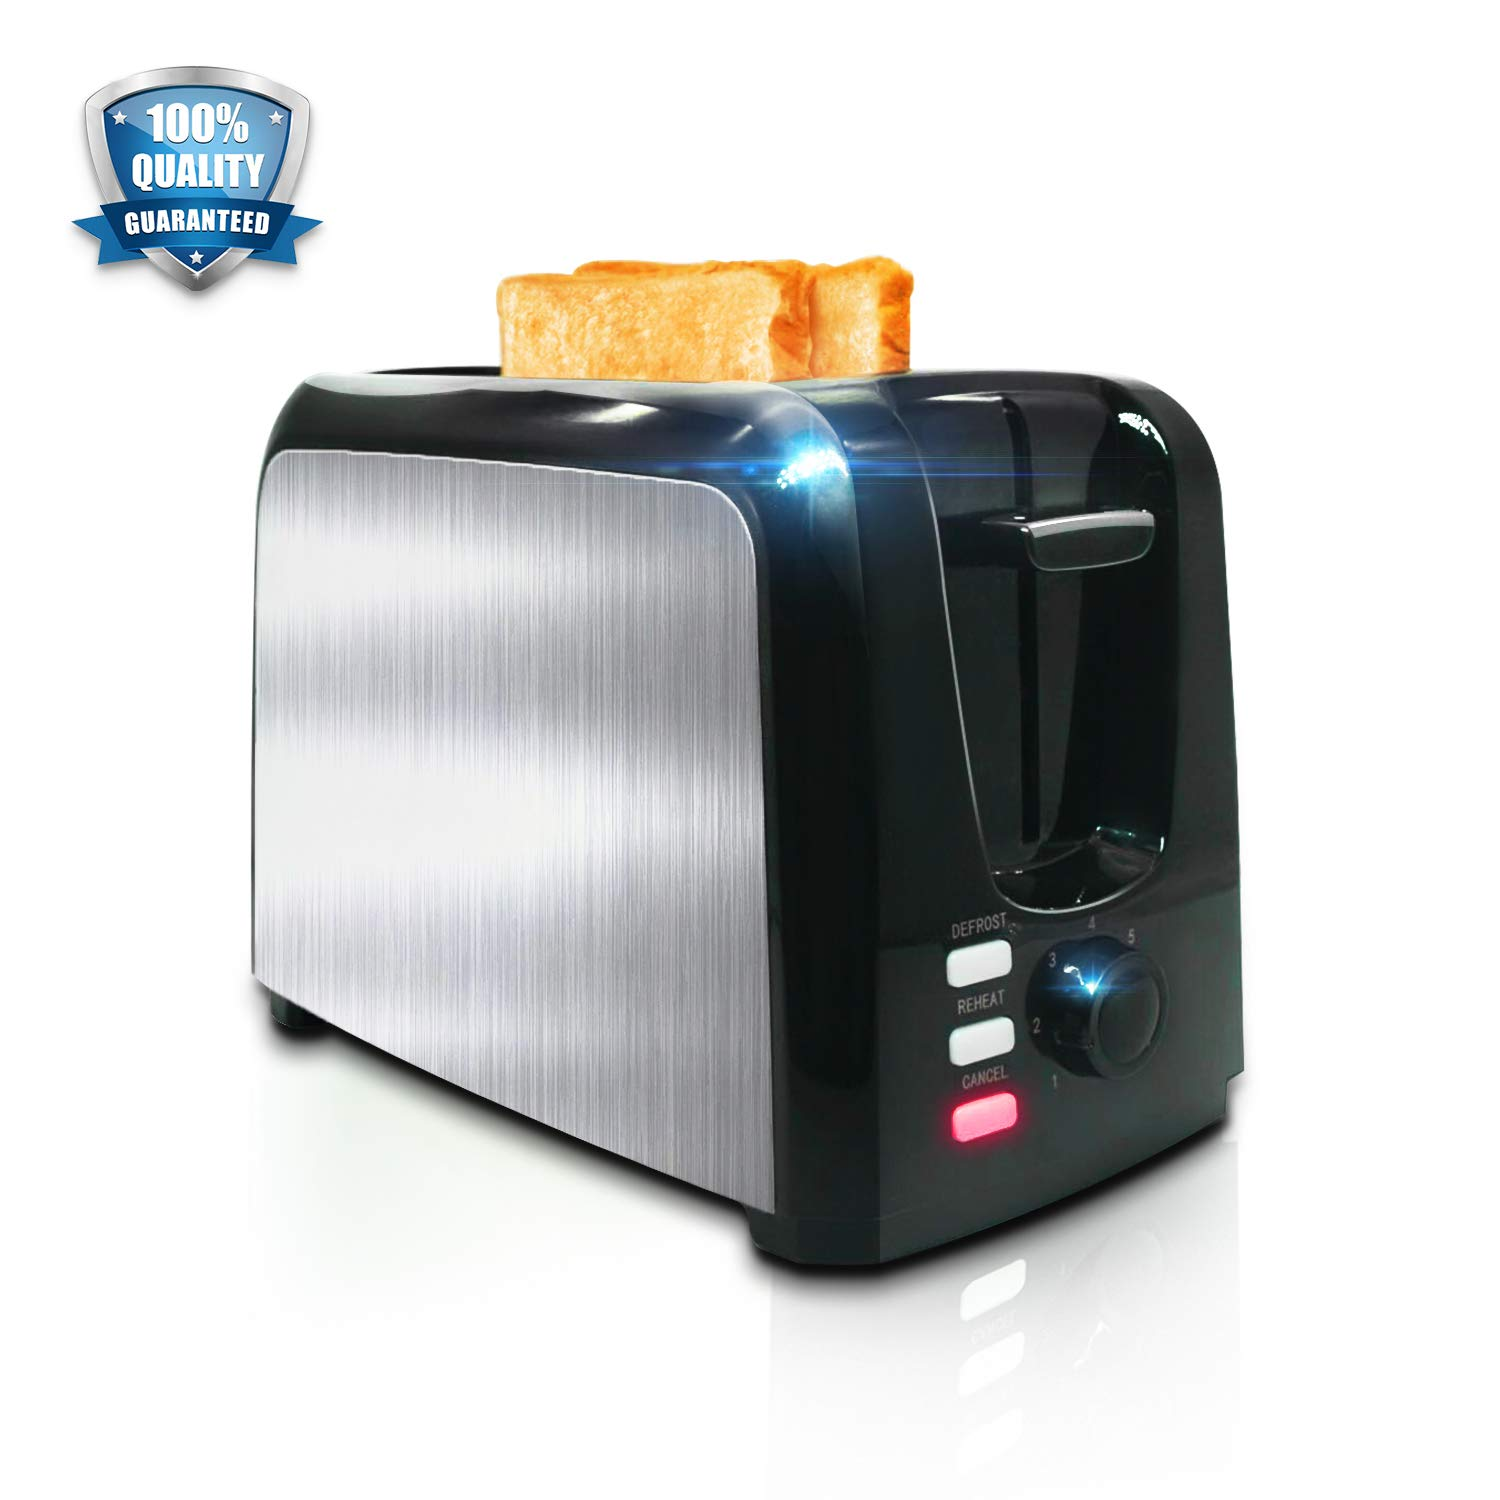 Toaster Toasts Evenly And Quickly│2 Slice Toaster With Bagel Defrost Cancel Function│Compact Black Stainless Steel Toasters 2 Slice Best Rated Prime Top With 7 Shade Bread Setting, Extra Wide Slot